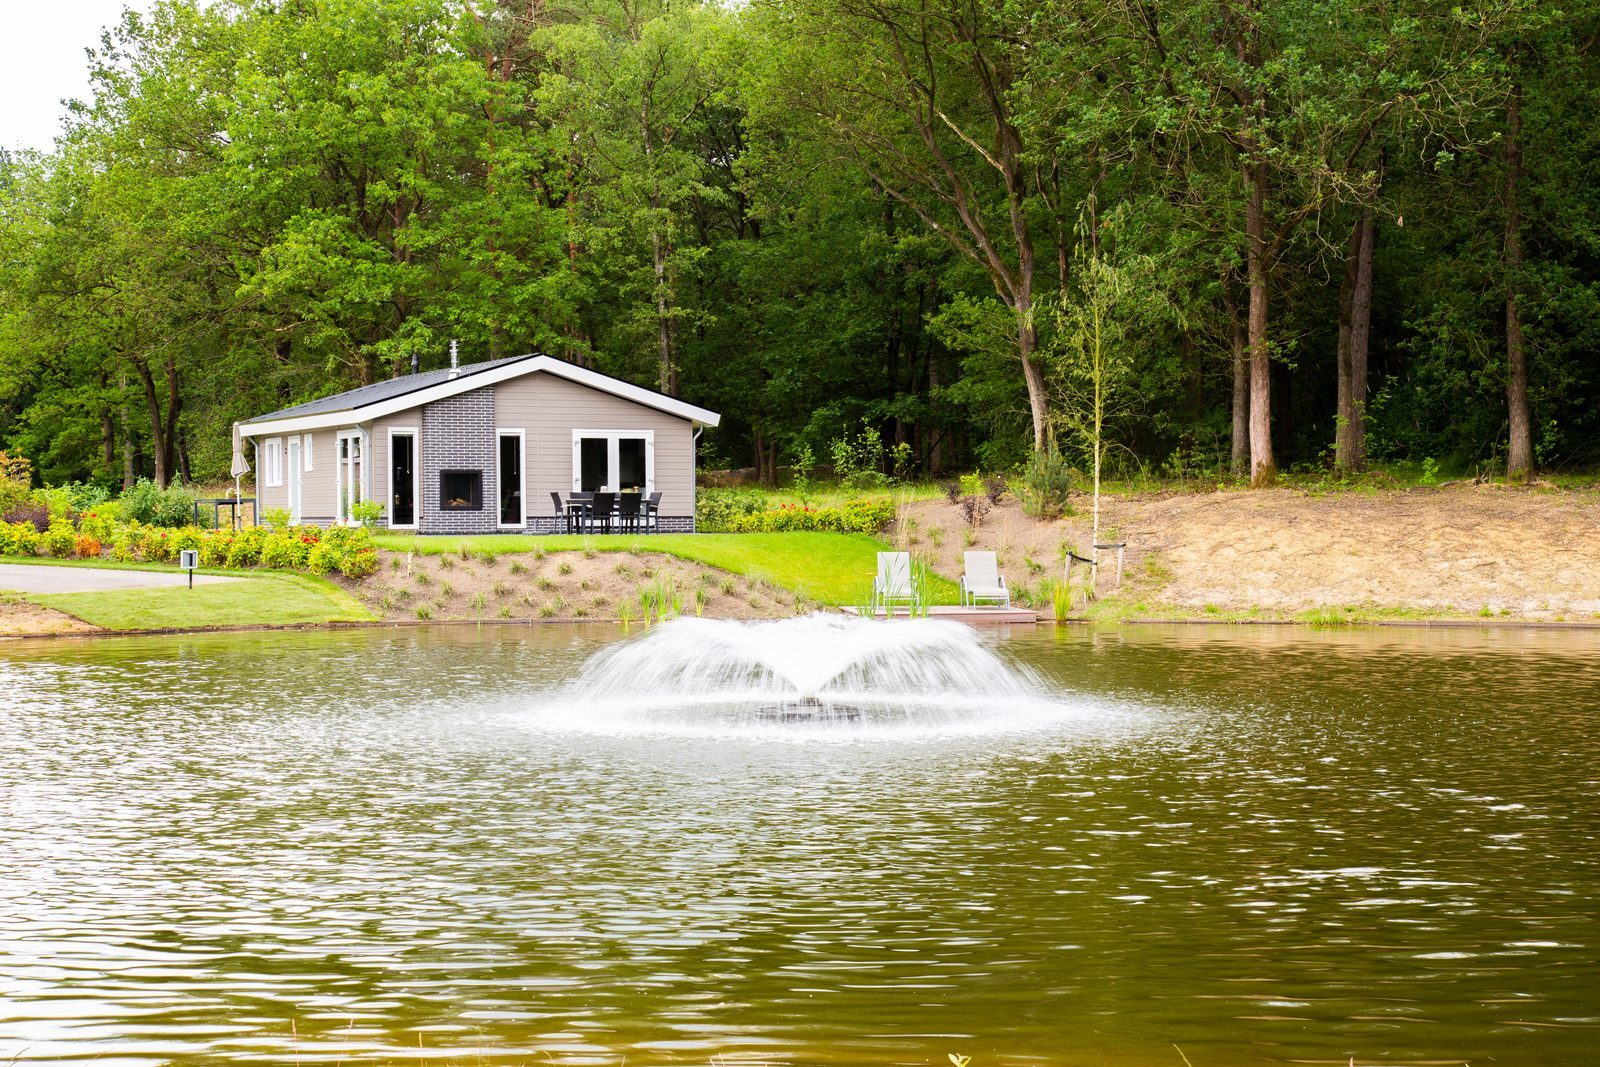 Discover our newest holiday park at the Veluwe.